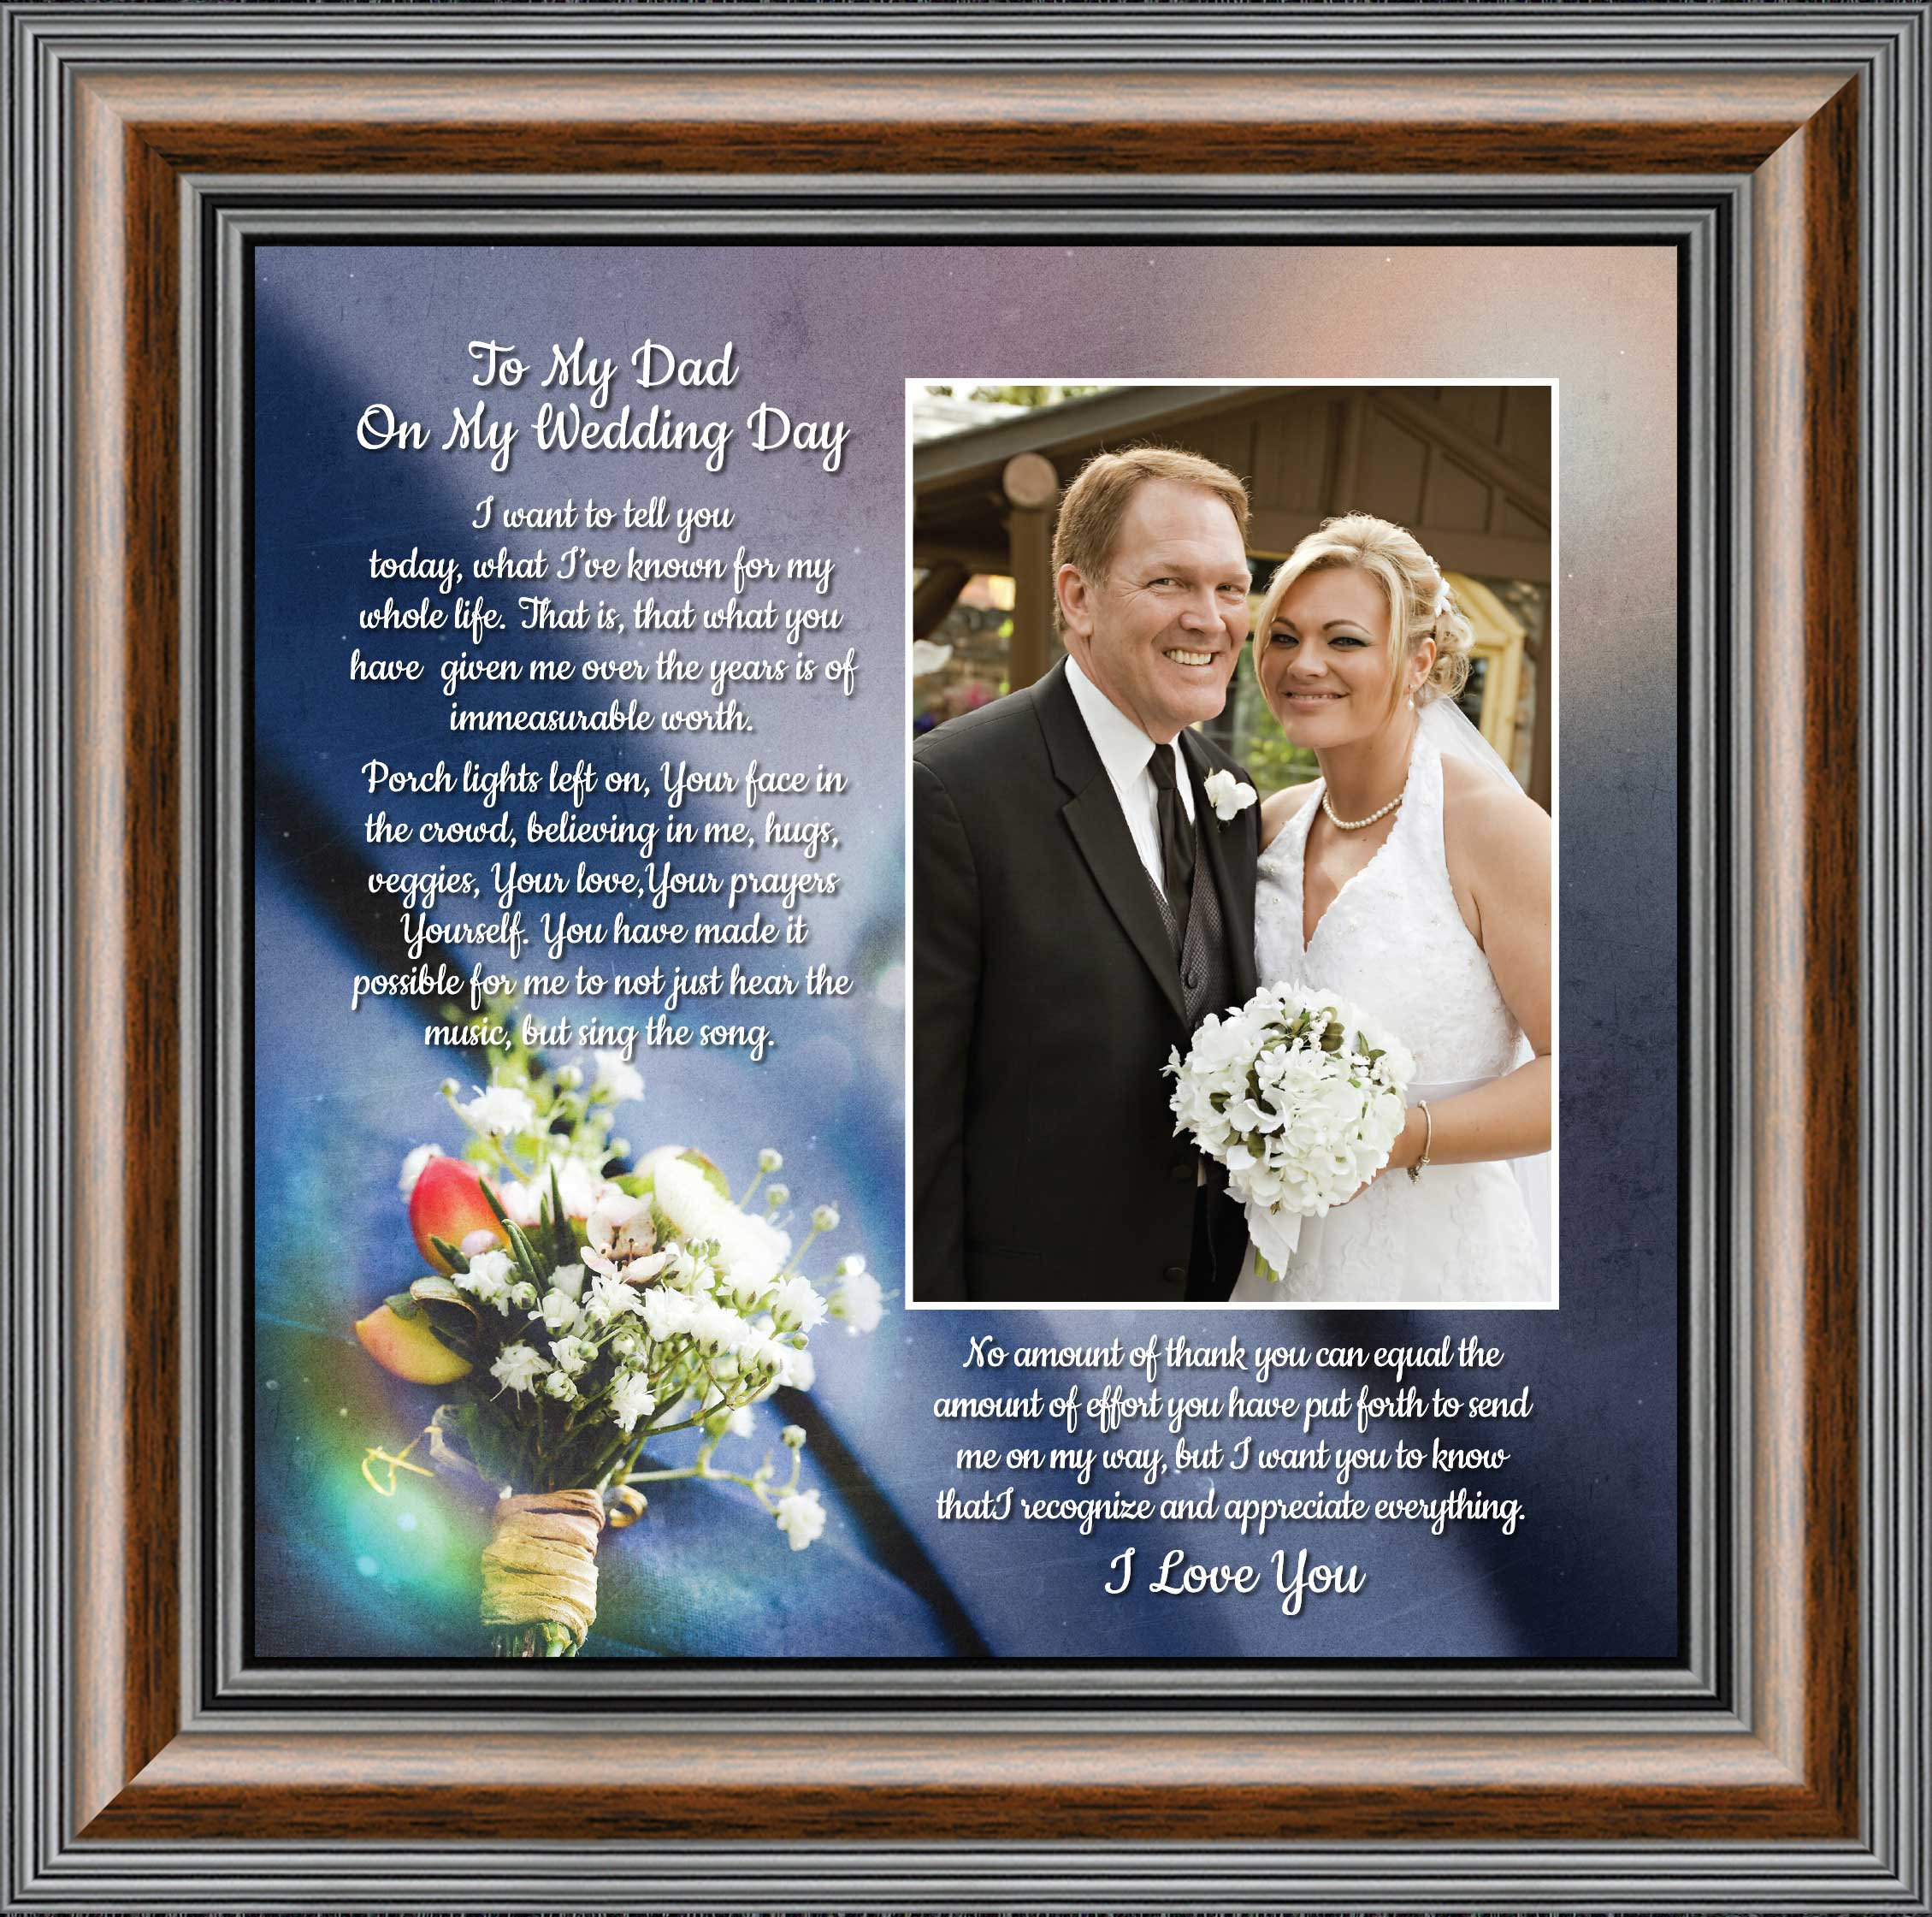 To My Dad On My Wedding Day Father Of The Bride Gifts Daddy